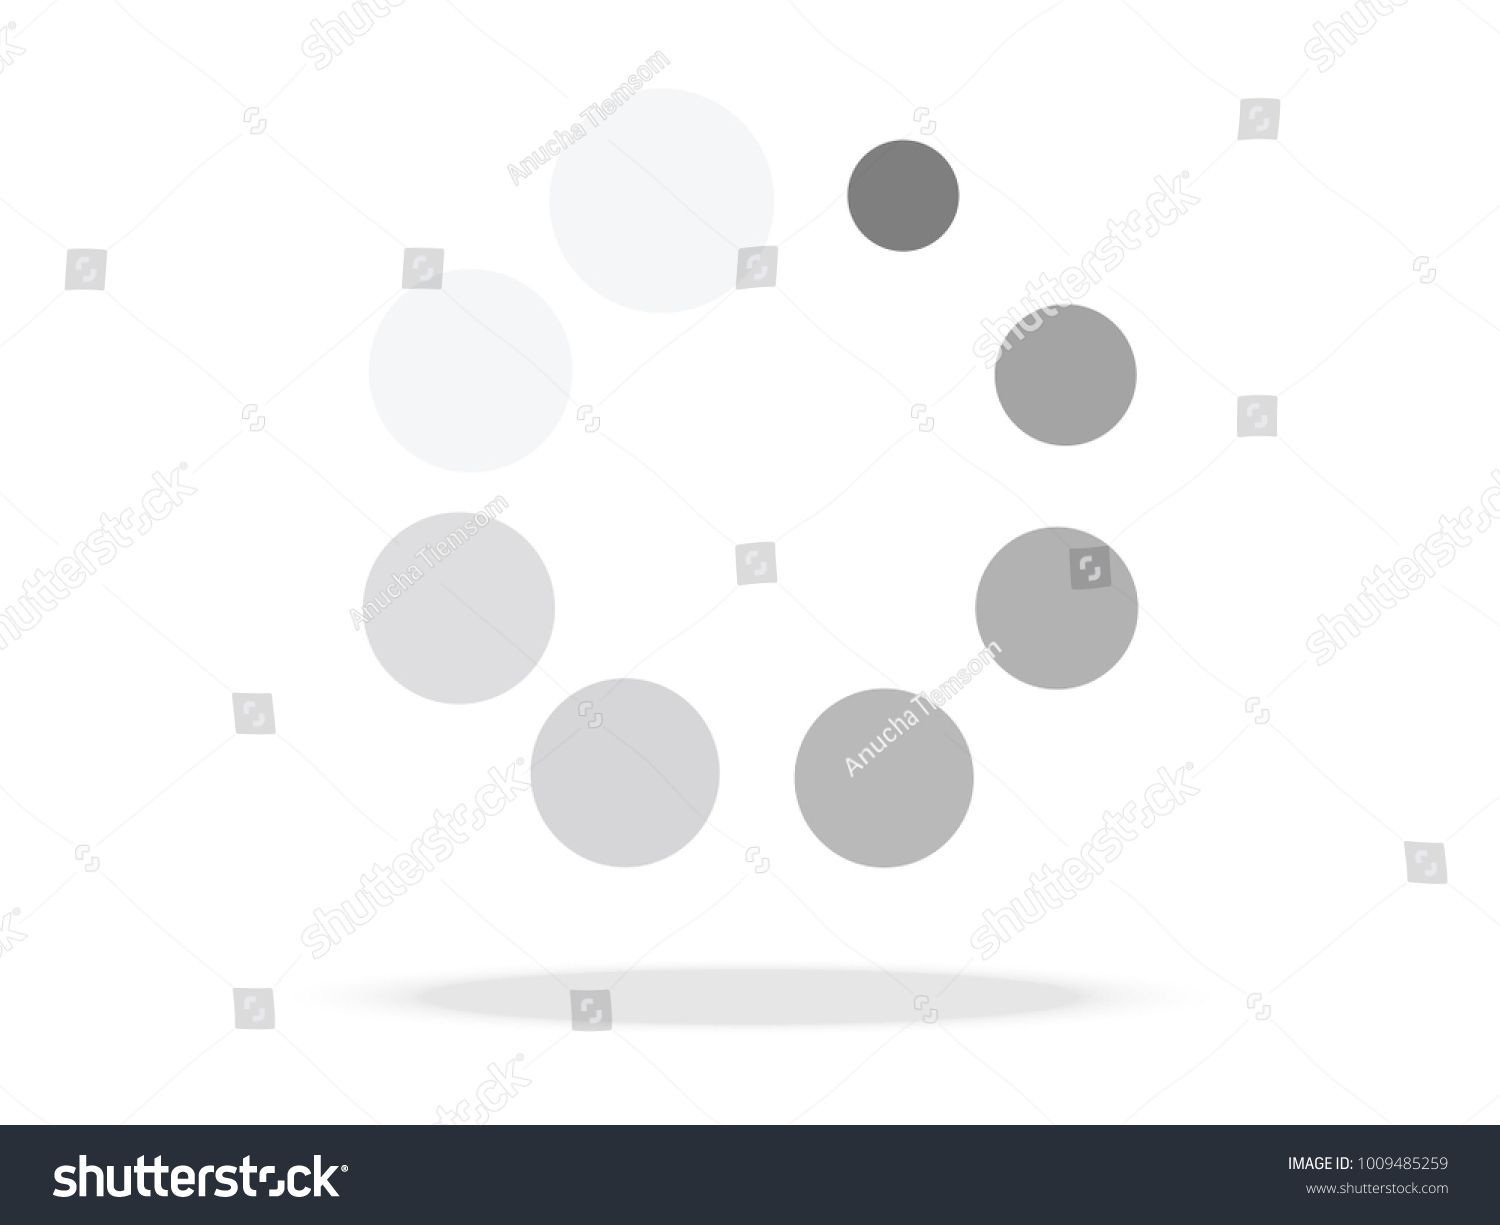 Loading symbol abstract spinner icon web stock vector 1009485259 loading symbol abstract spinner icon for web page design vector illustration biocorpaavc Image collections